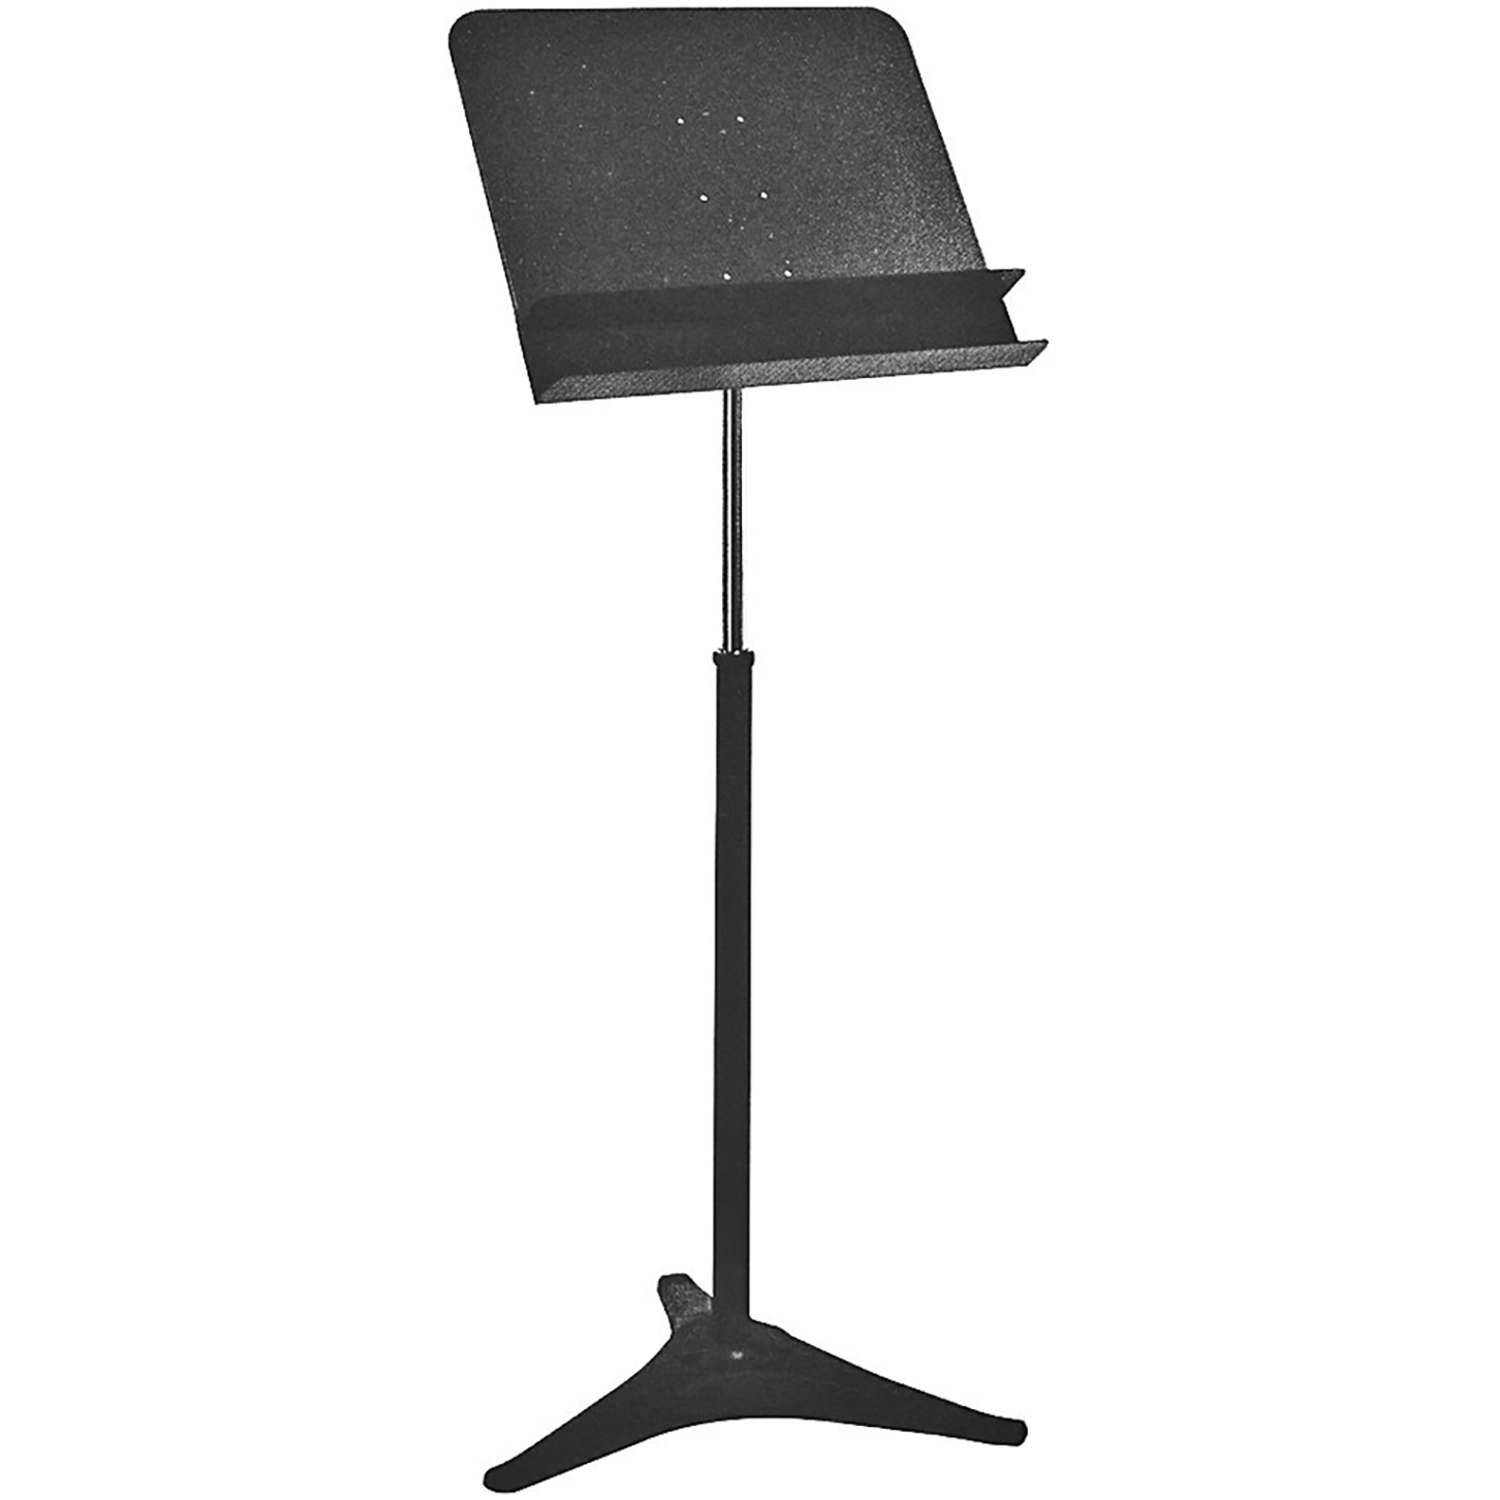 "Hamilton ""The Trigger"" HD Symphonic Stand Double Shelf by Hamilton Stands"